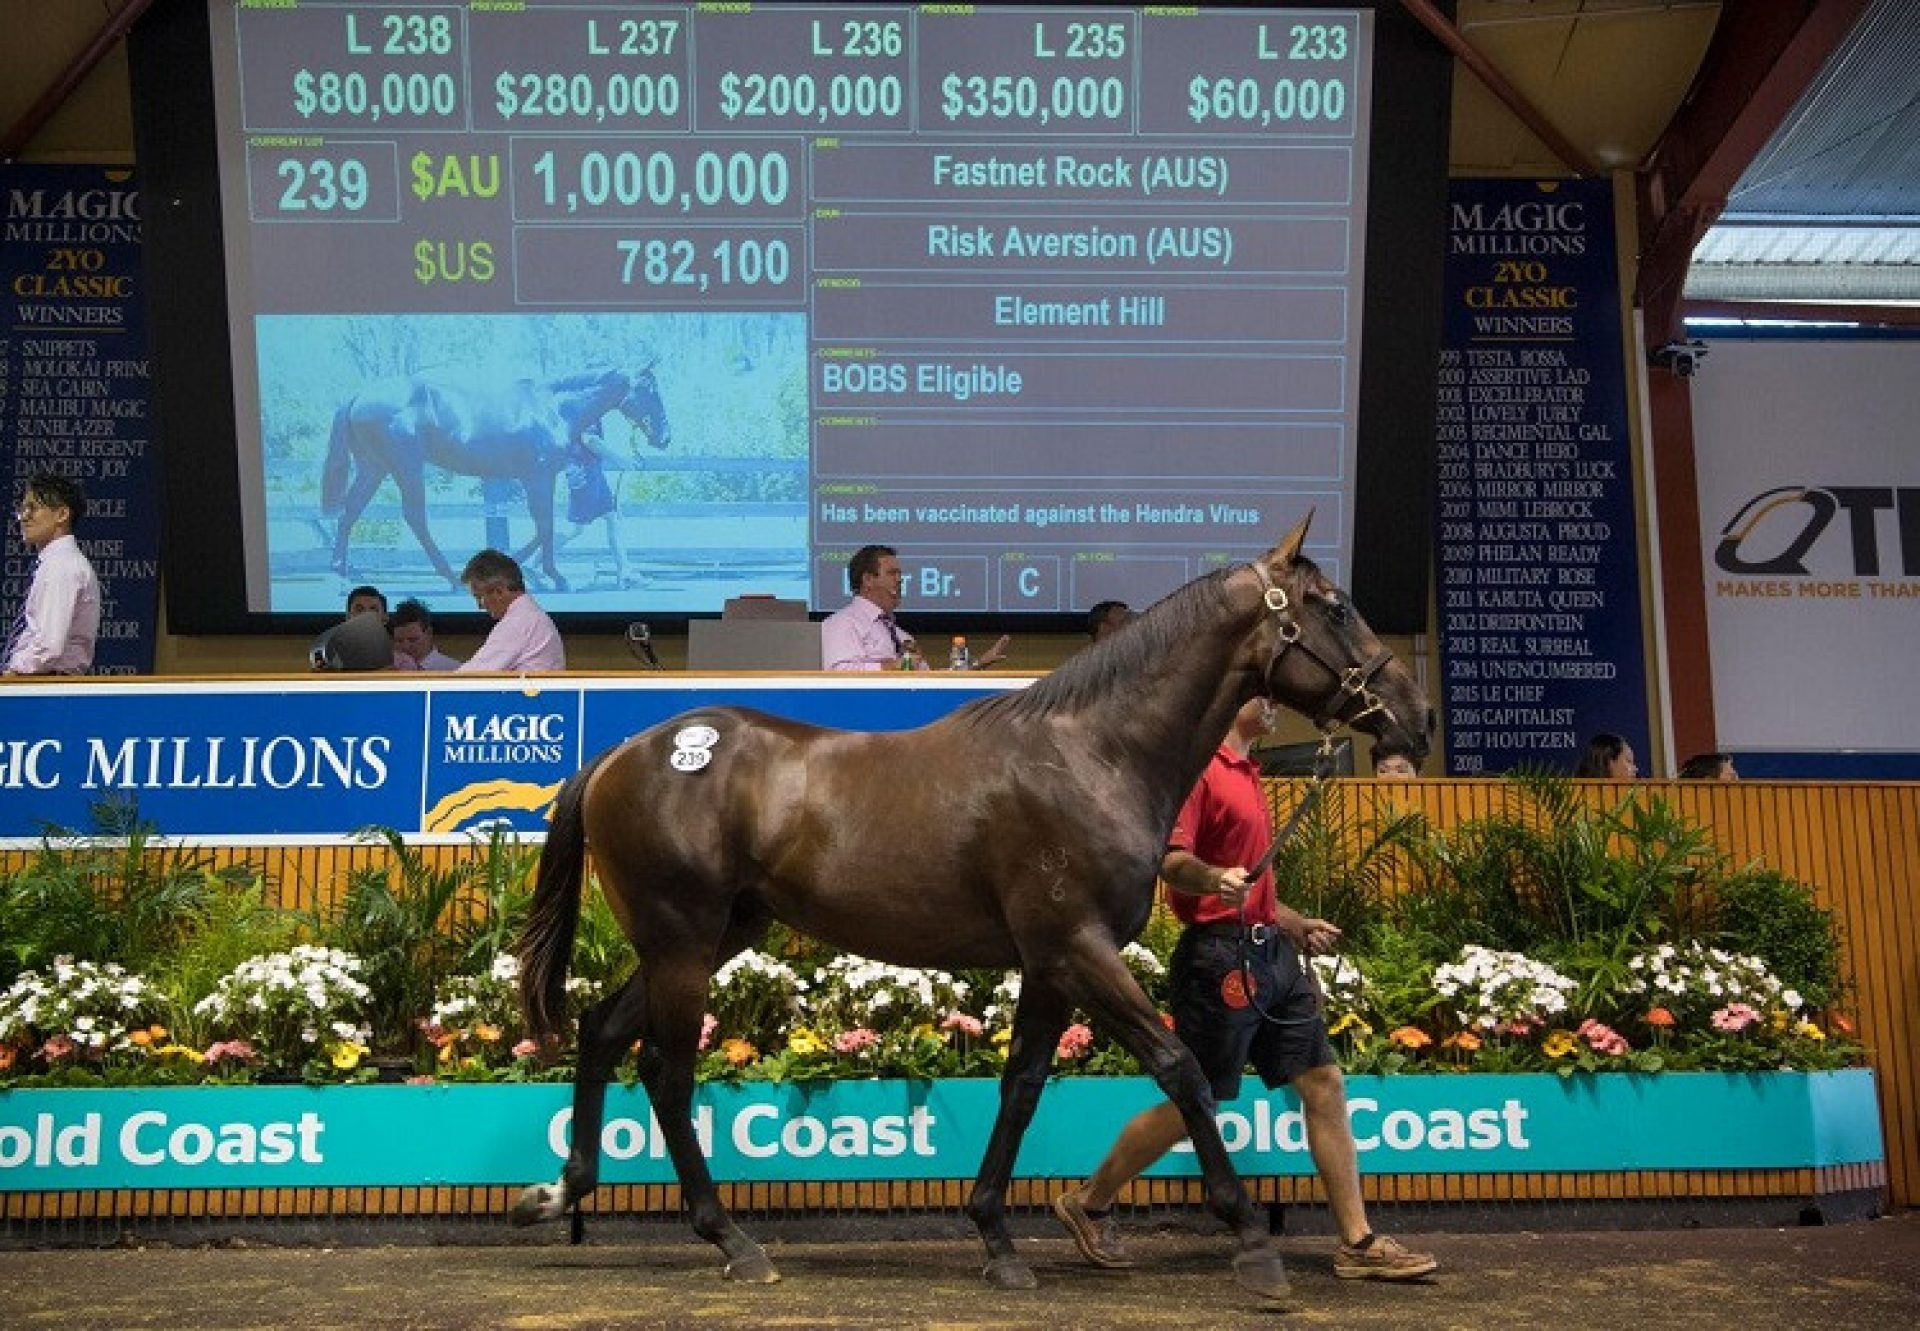 Fastnet Rock ex Risk Aversion colt selling for $1 million at the Magic Millions